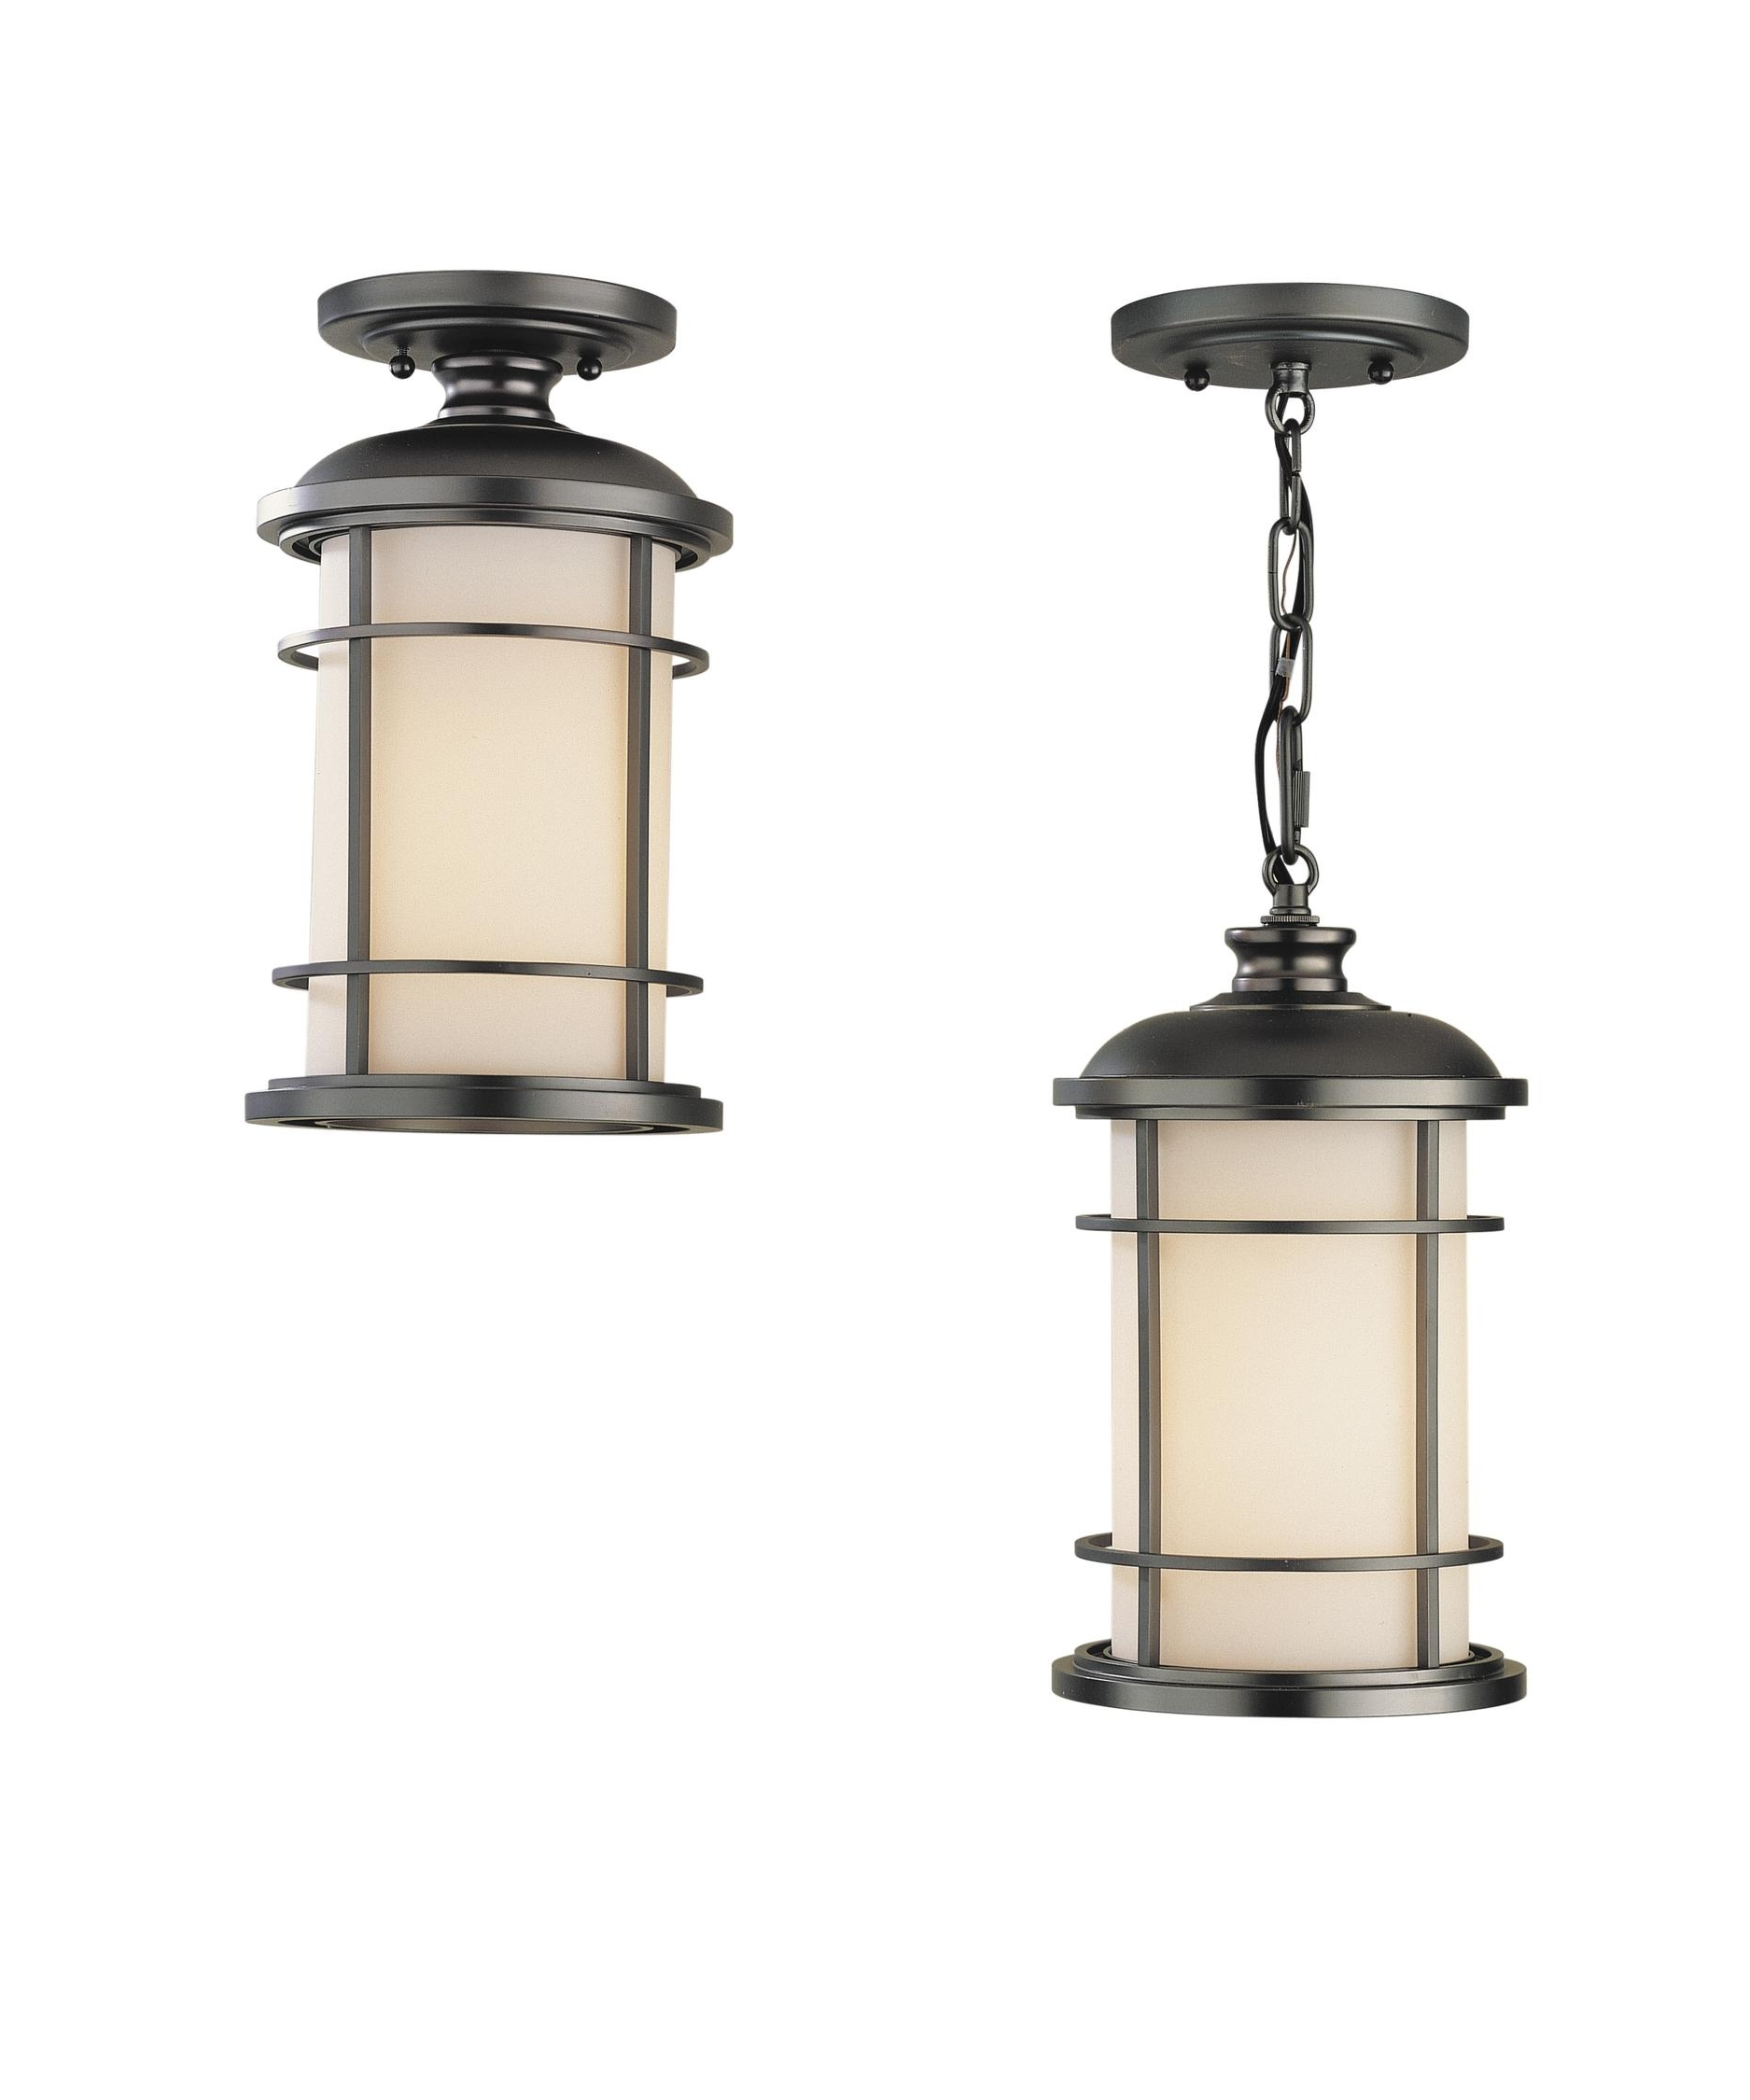 Led Outdoor Hanging Lanterns Throughout Most Popular Murray Feiss Ol2209 Lighthouse 7 Inch Wide 1 Light Outdoor Hanging (View 9 of 20)